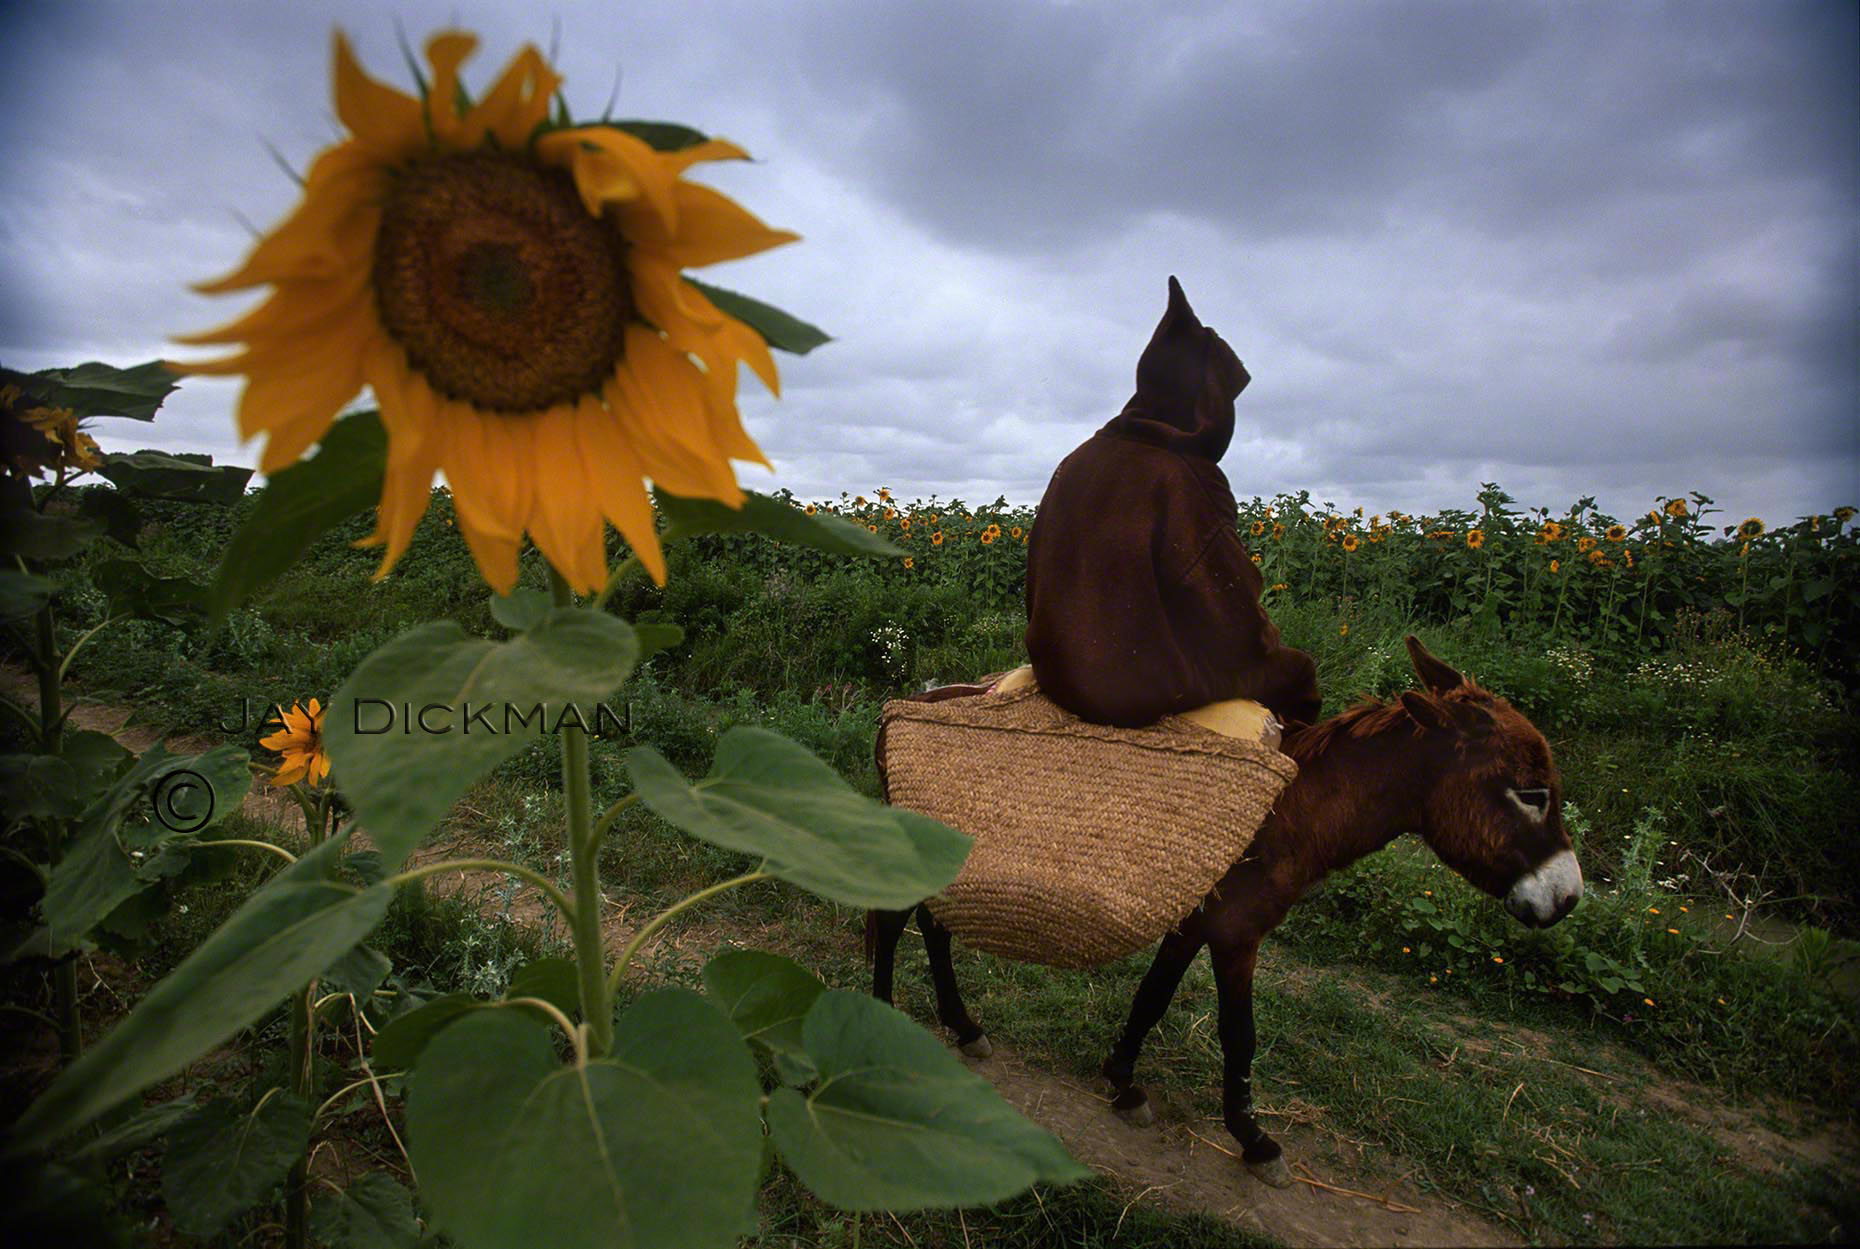 102-Morocco sunflower & mule_wm.jpg